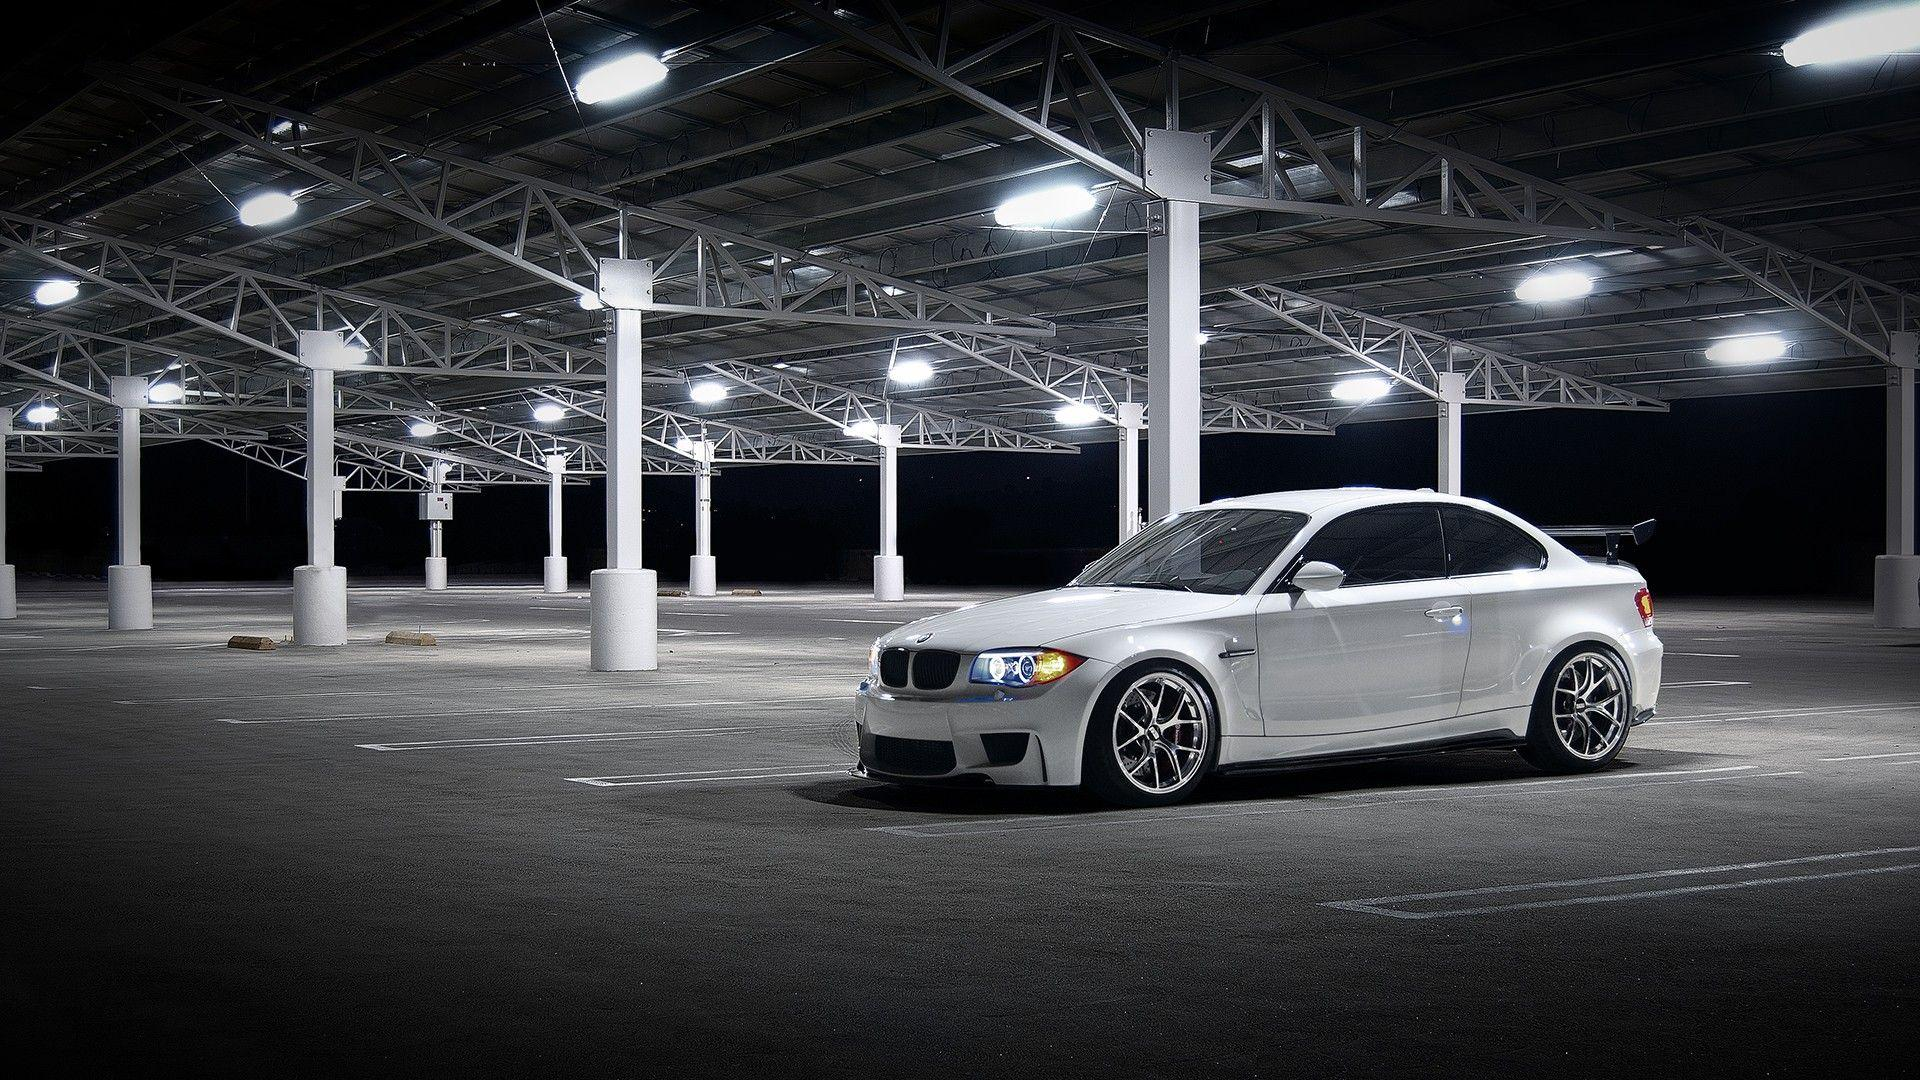 BMW 135i Wallpaper 04 - [1920x1080]